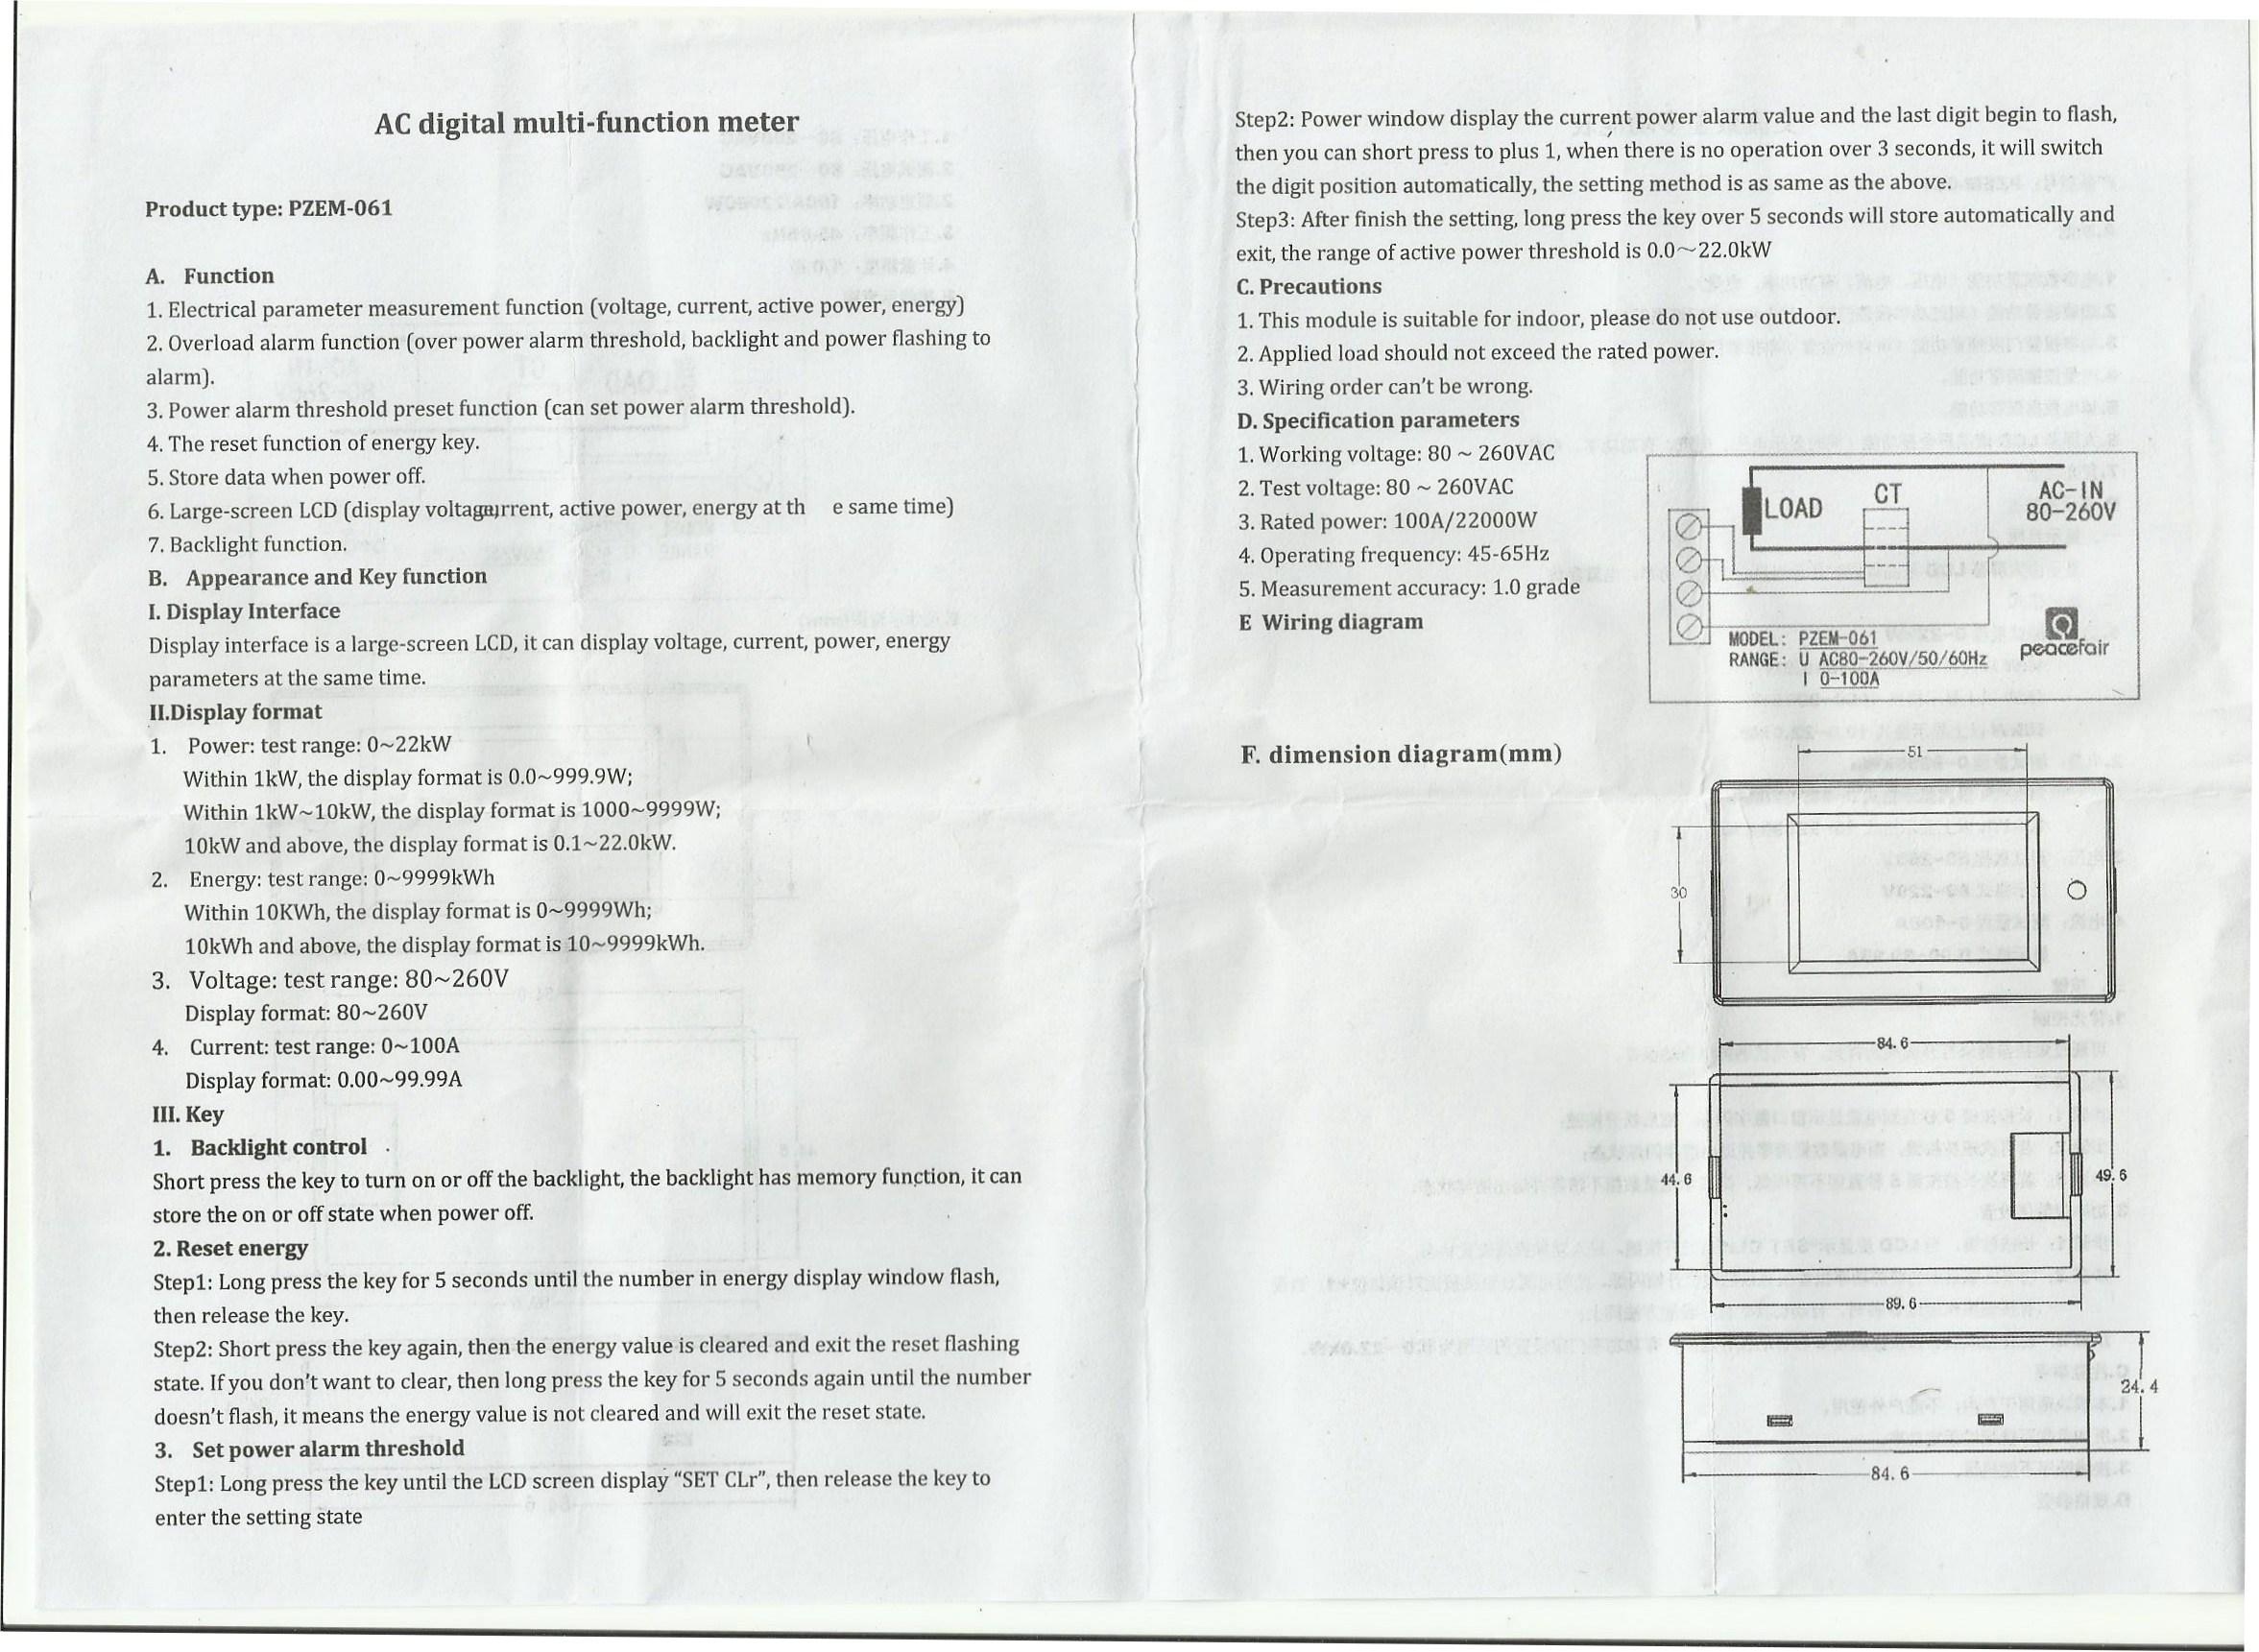 1997 buick lesabre ignition switch wiring diagram html